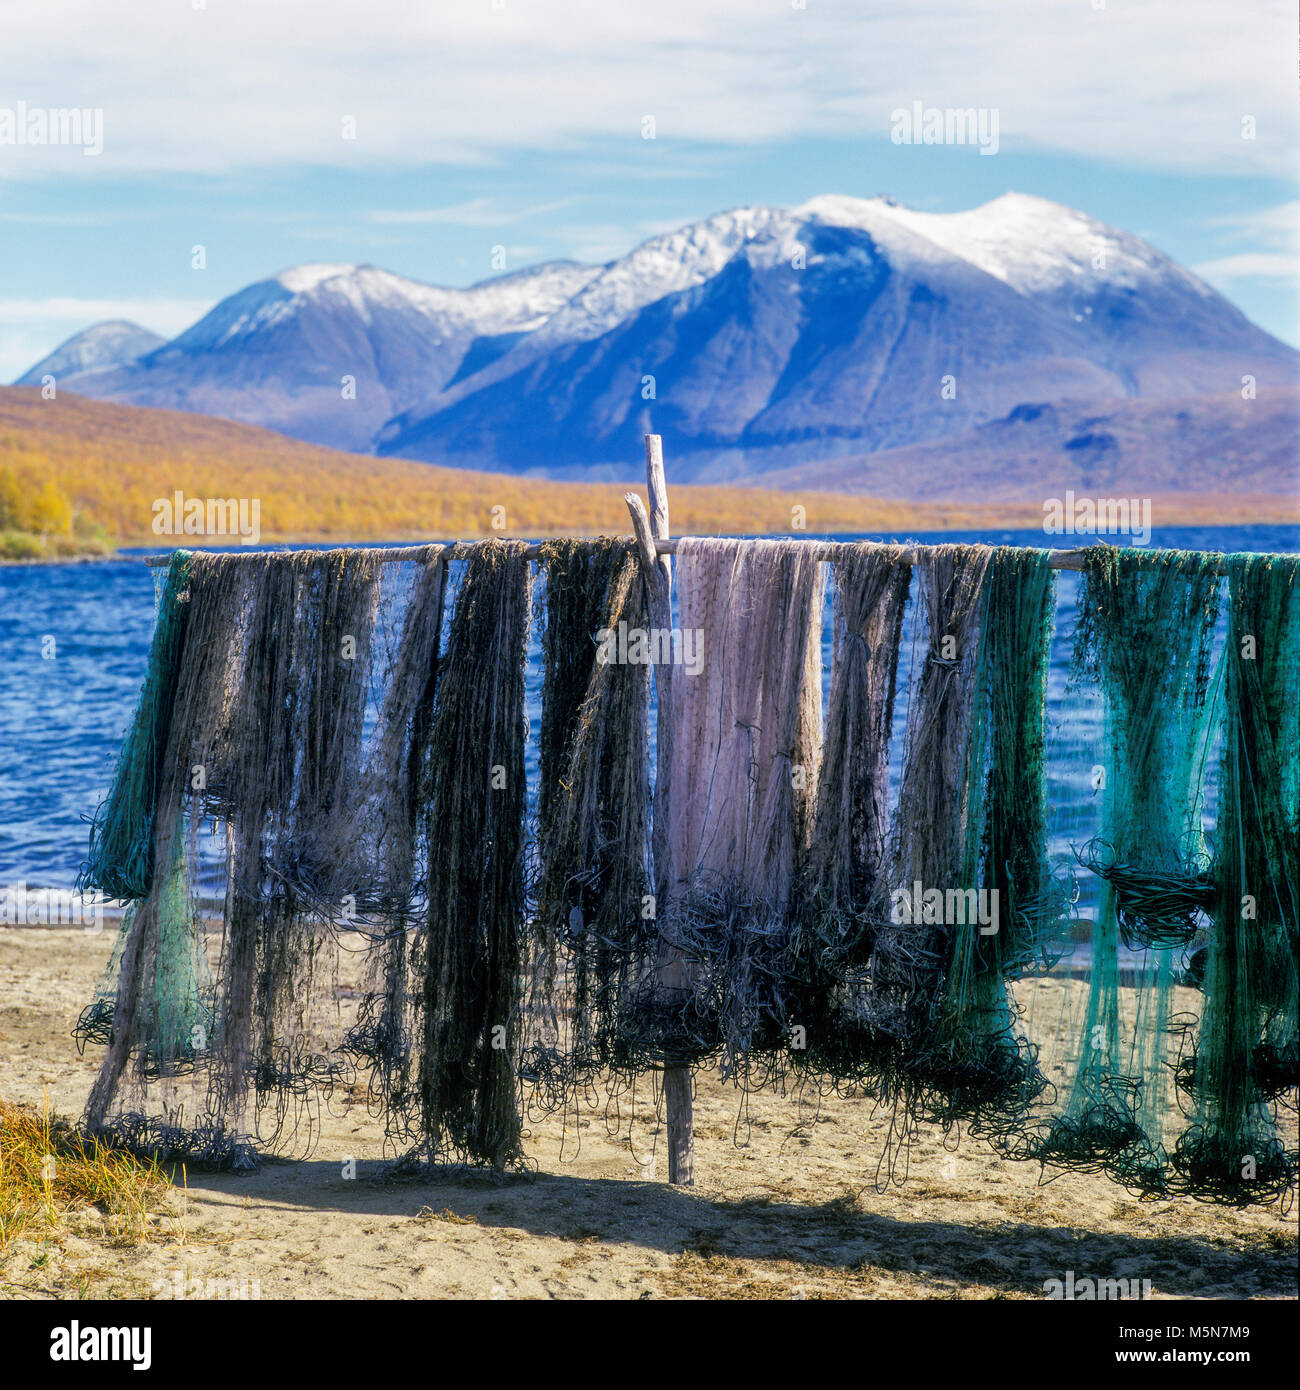 Fishing nets hung to dry. Laponia, Sweden. - Stock Image